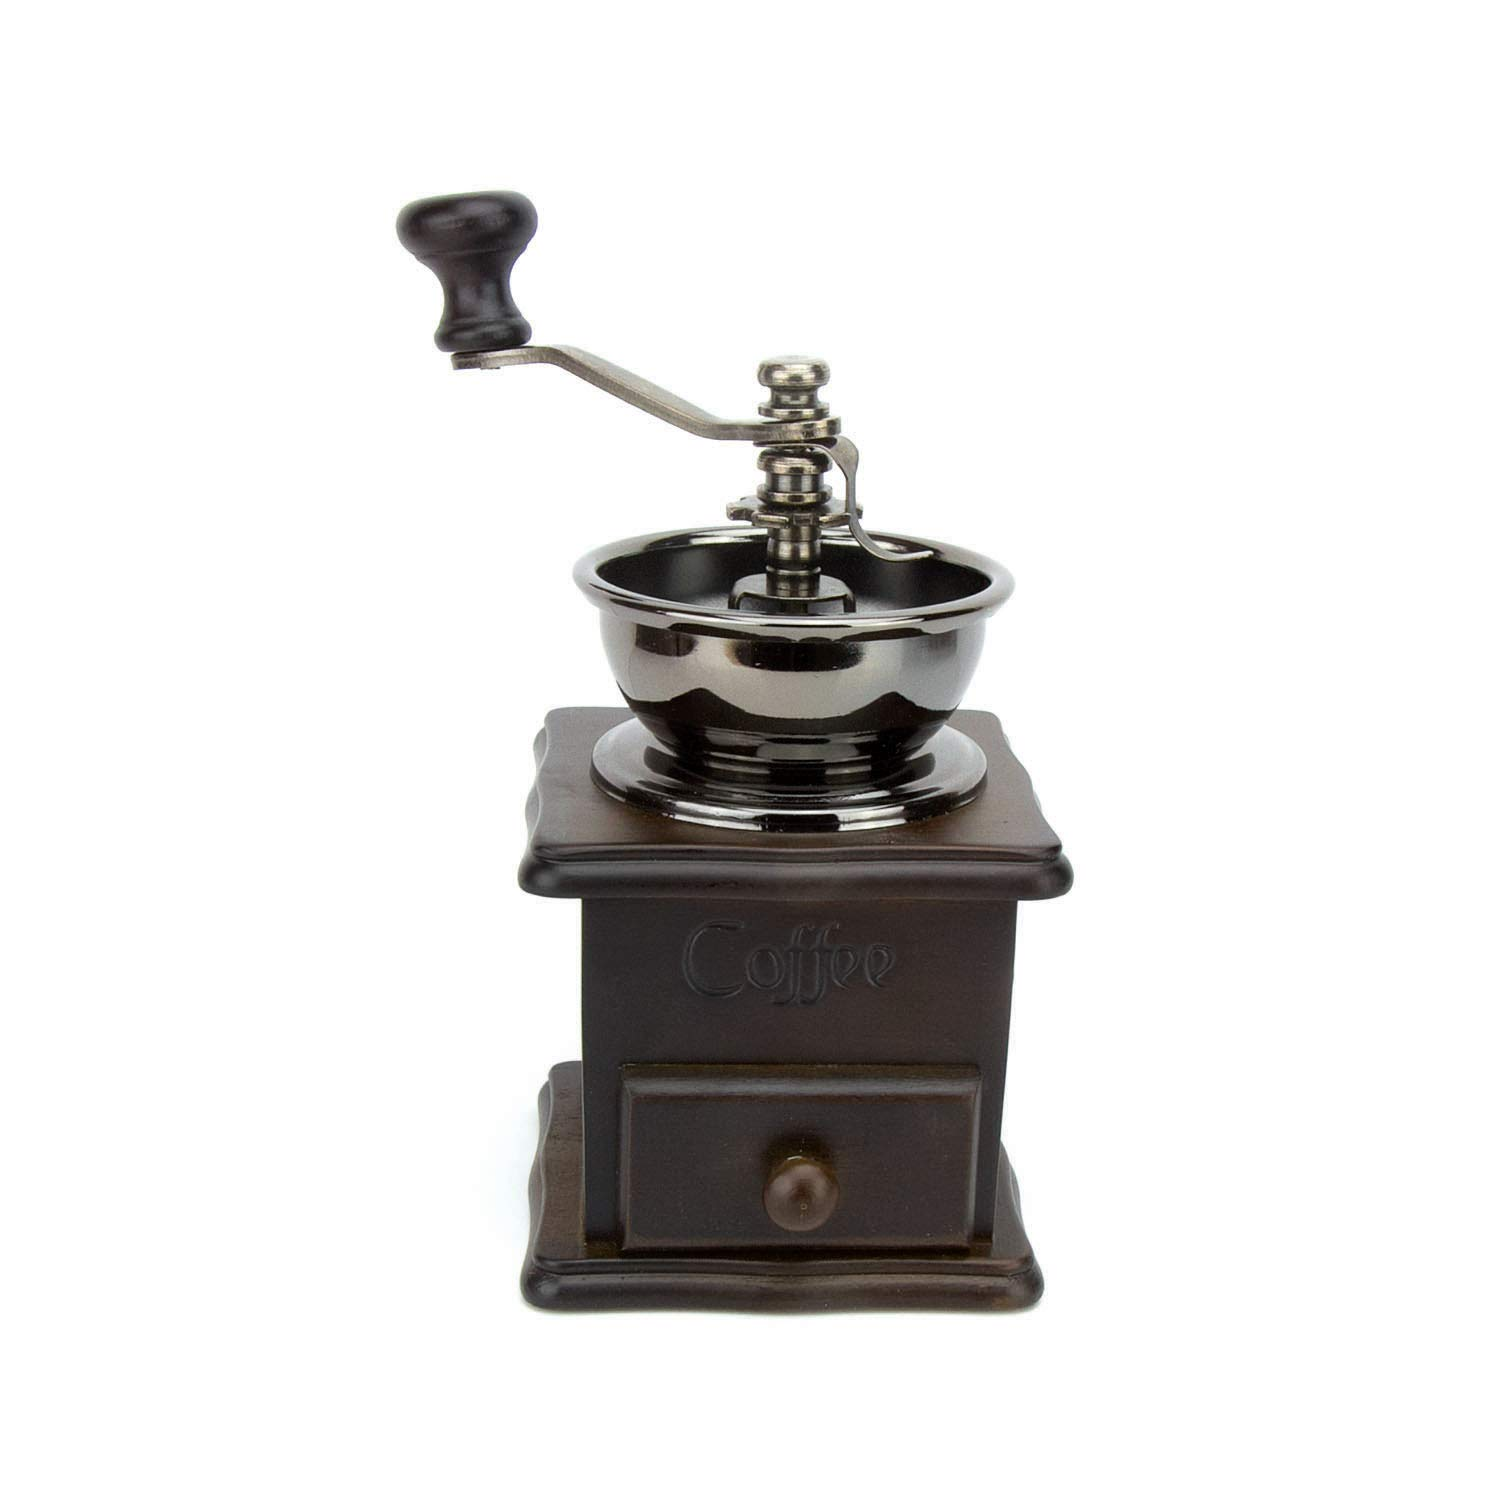 Evelyne GMT-10013 Manual Coffee Grinder Wooden Base with Drawer Coffee Bean Mill Vintage Antique Style Hand Crank